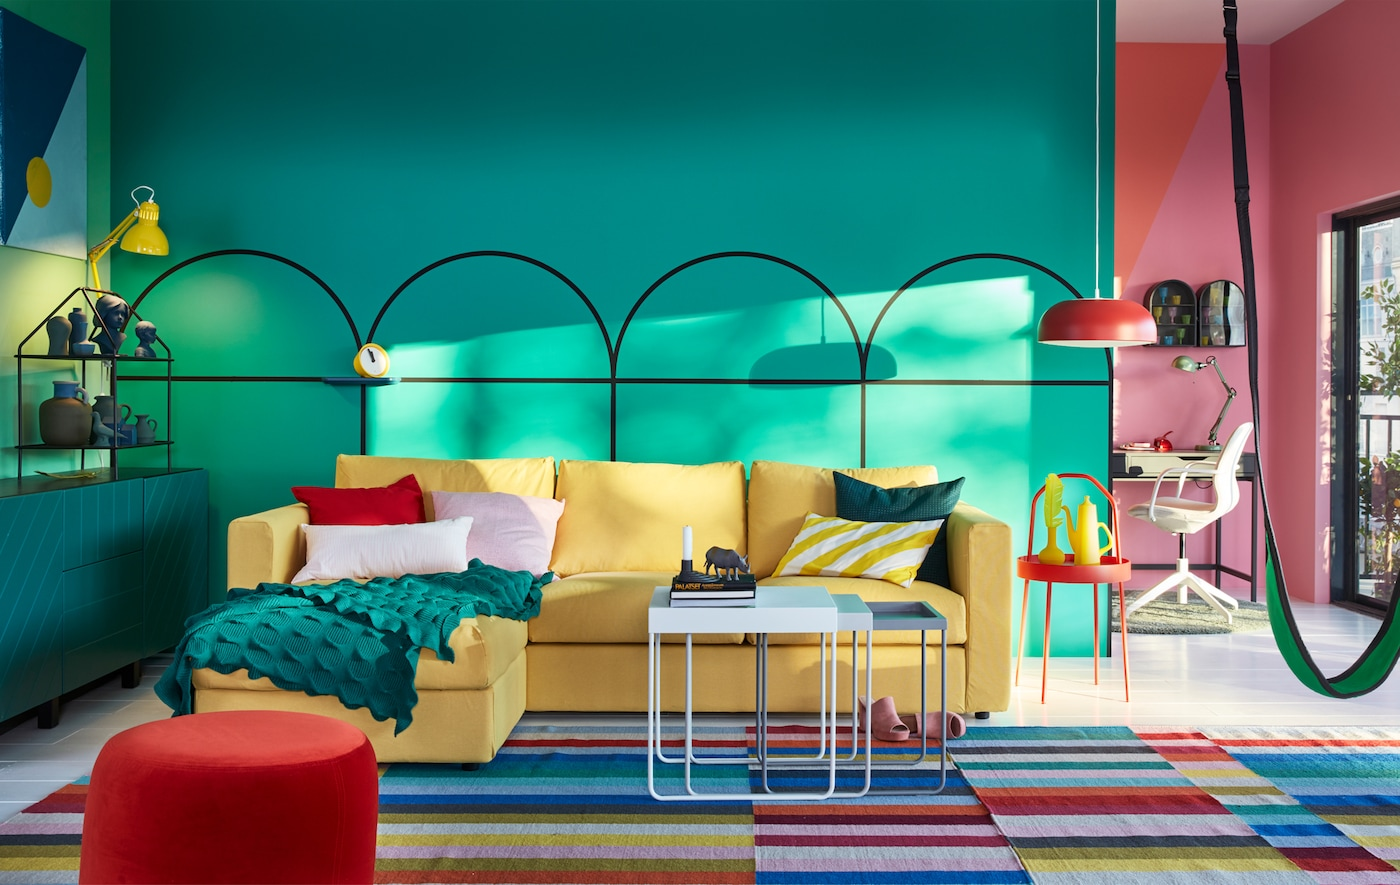 The yellow VIMLE sofa in a bright coloured living room.